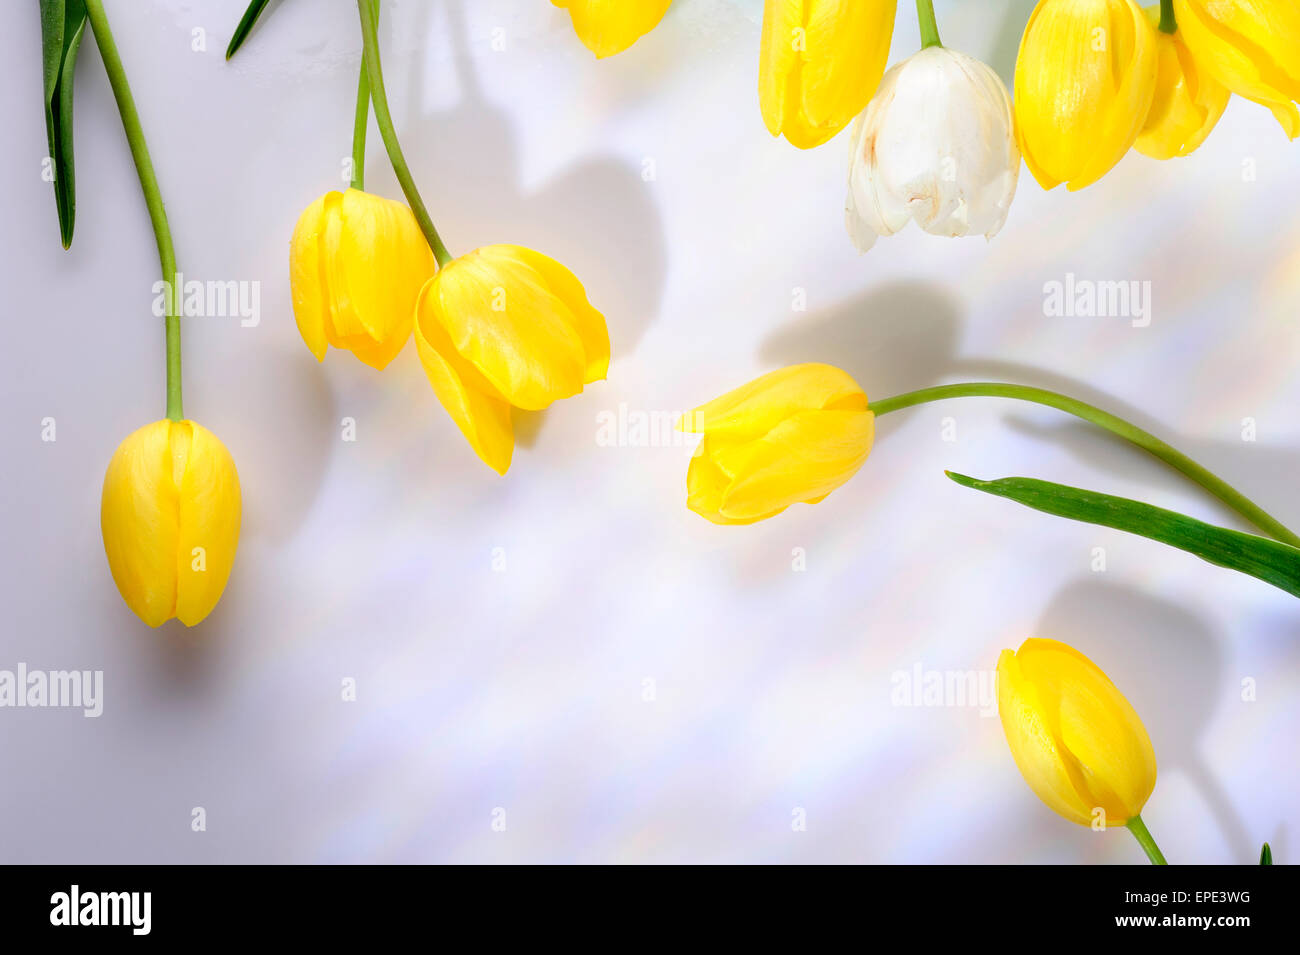 Beauty Bouqet Easter Flowers Petals Tulips Yellow Anniversary